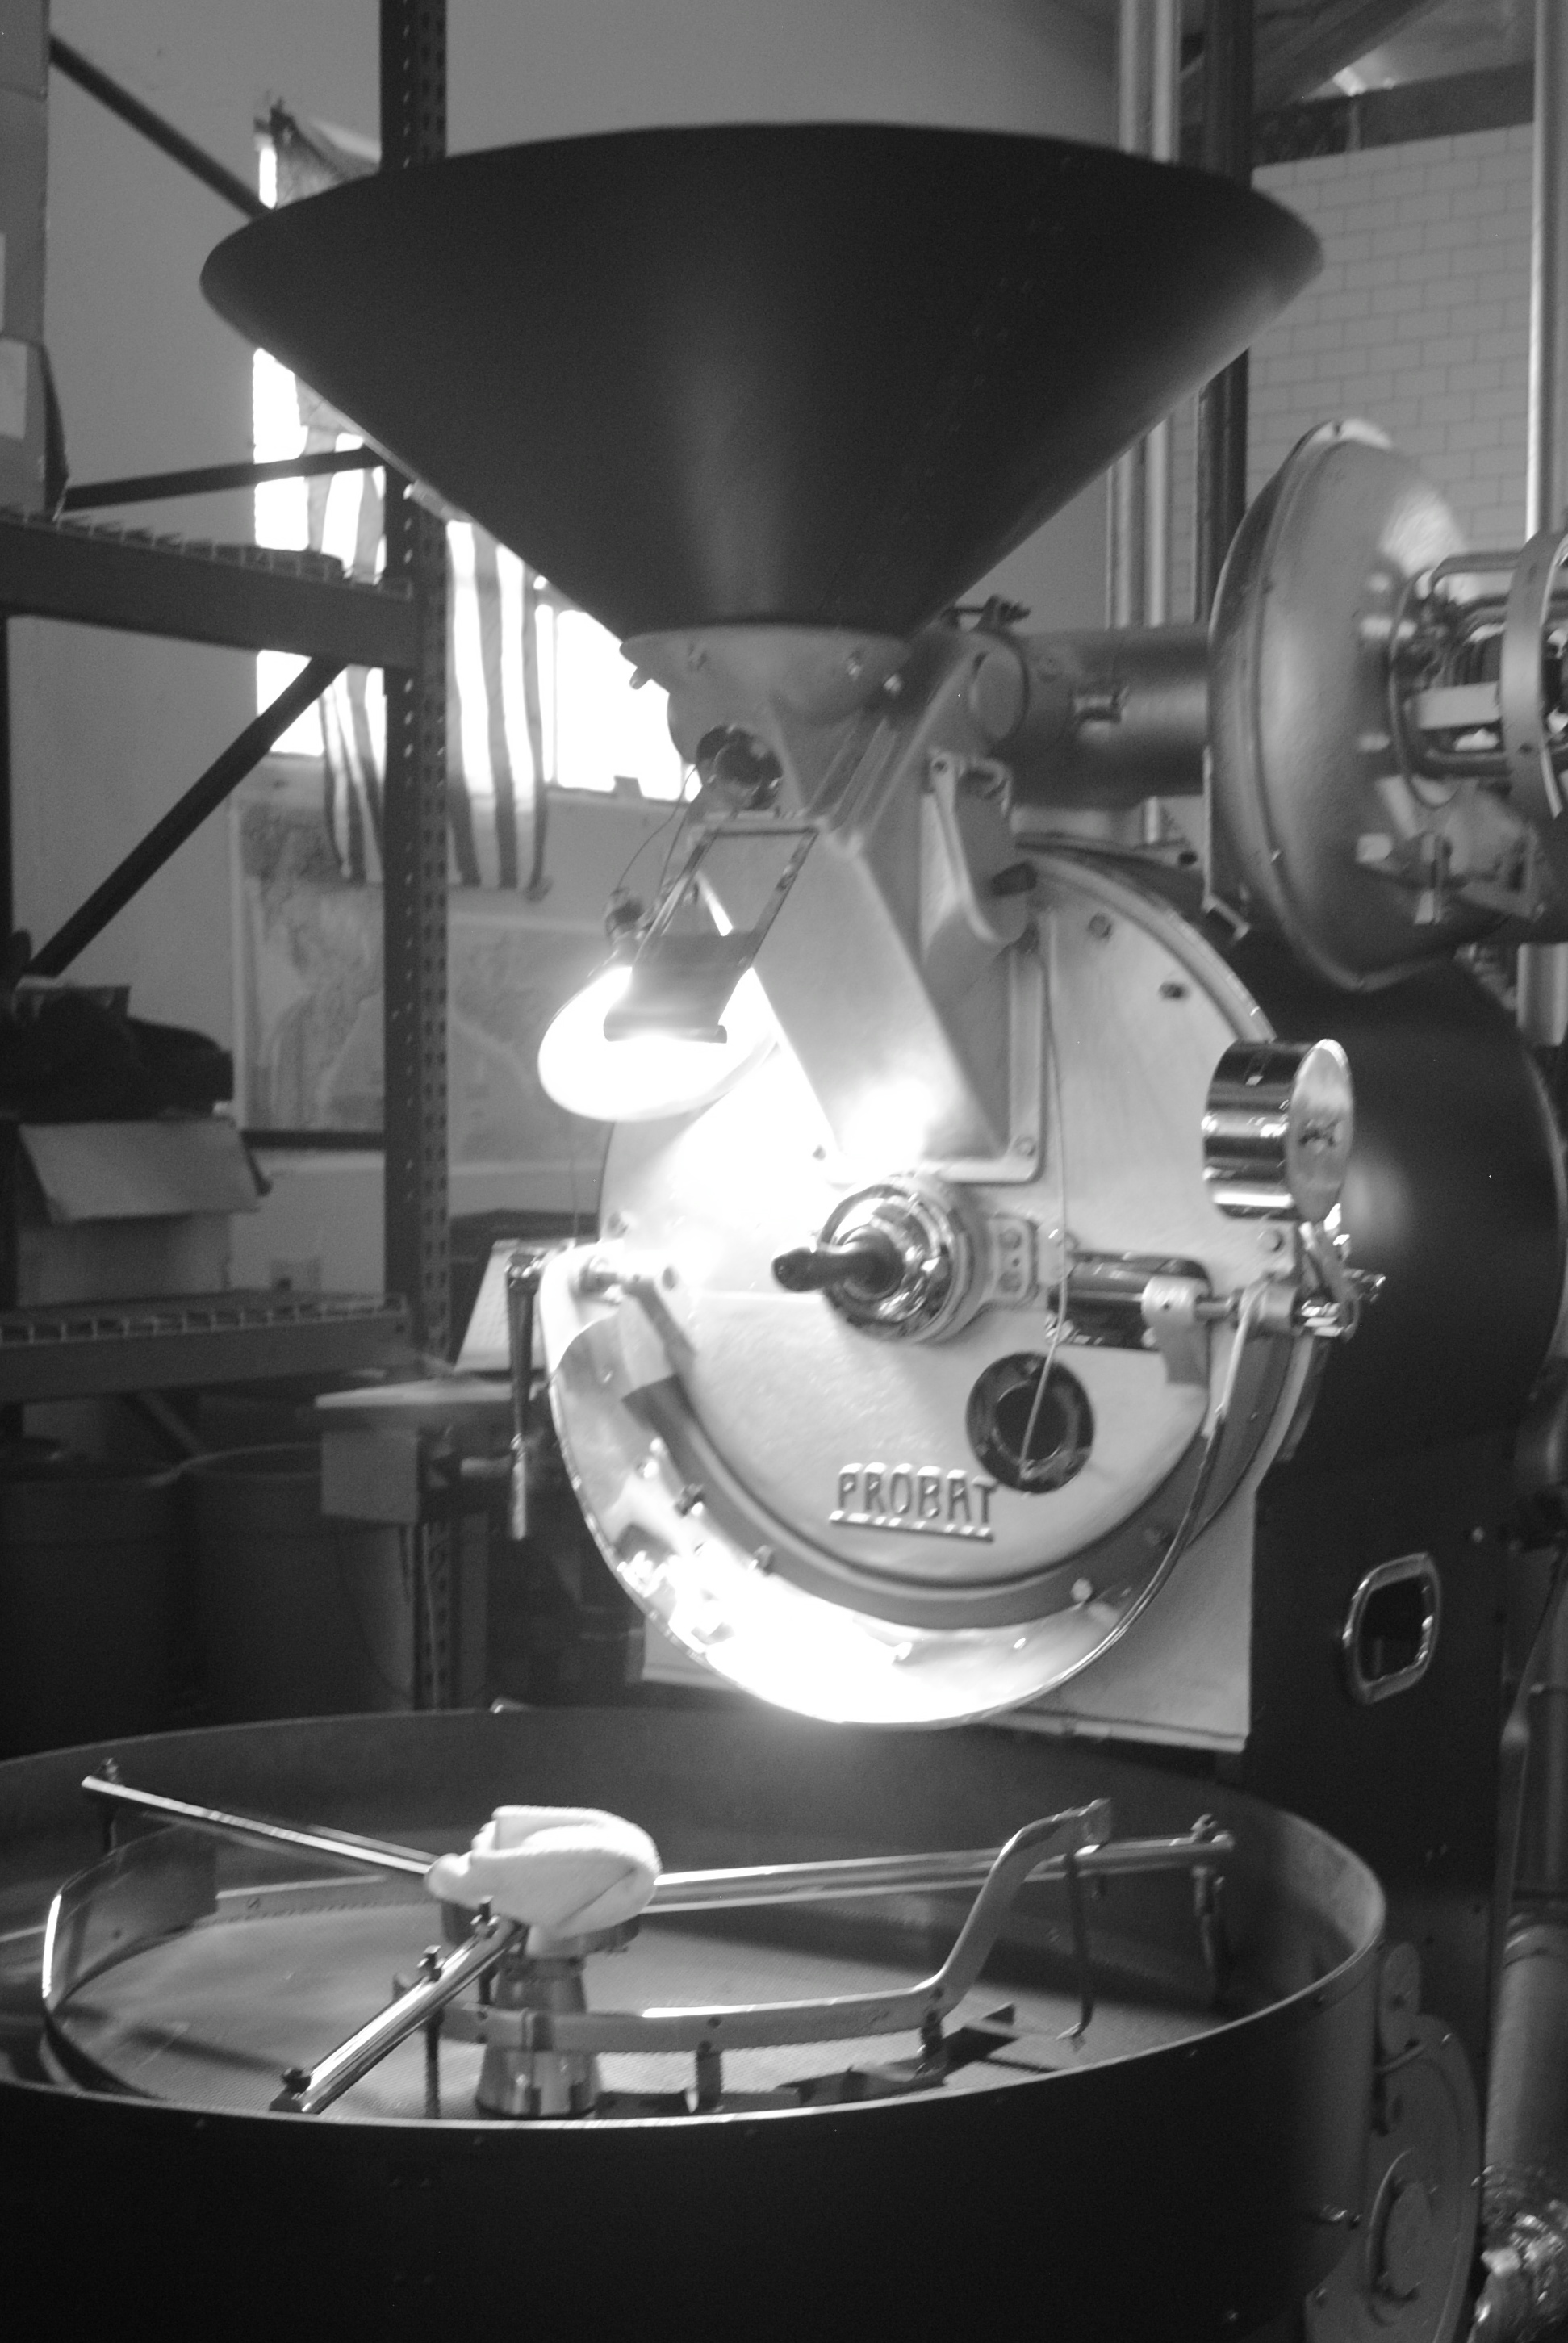 Handsome Coffee Roasters in action